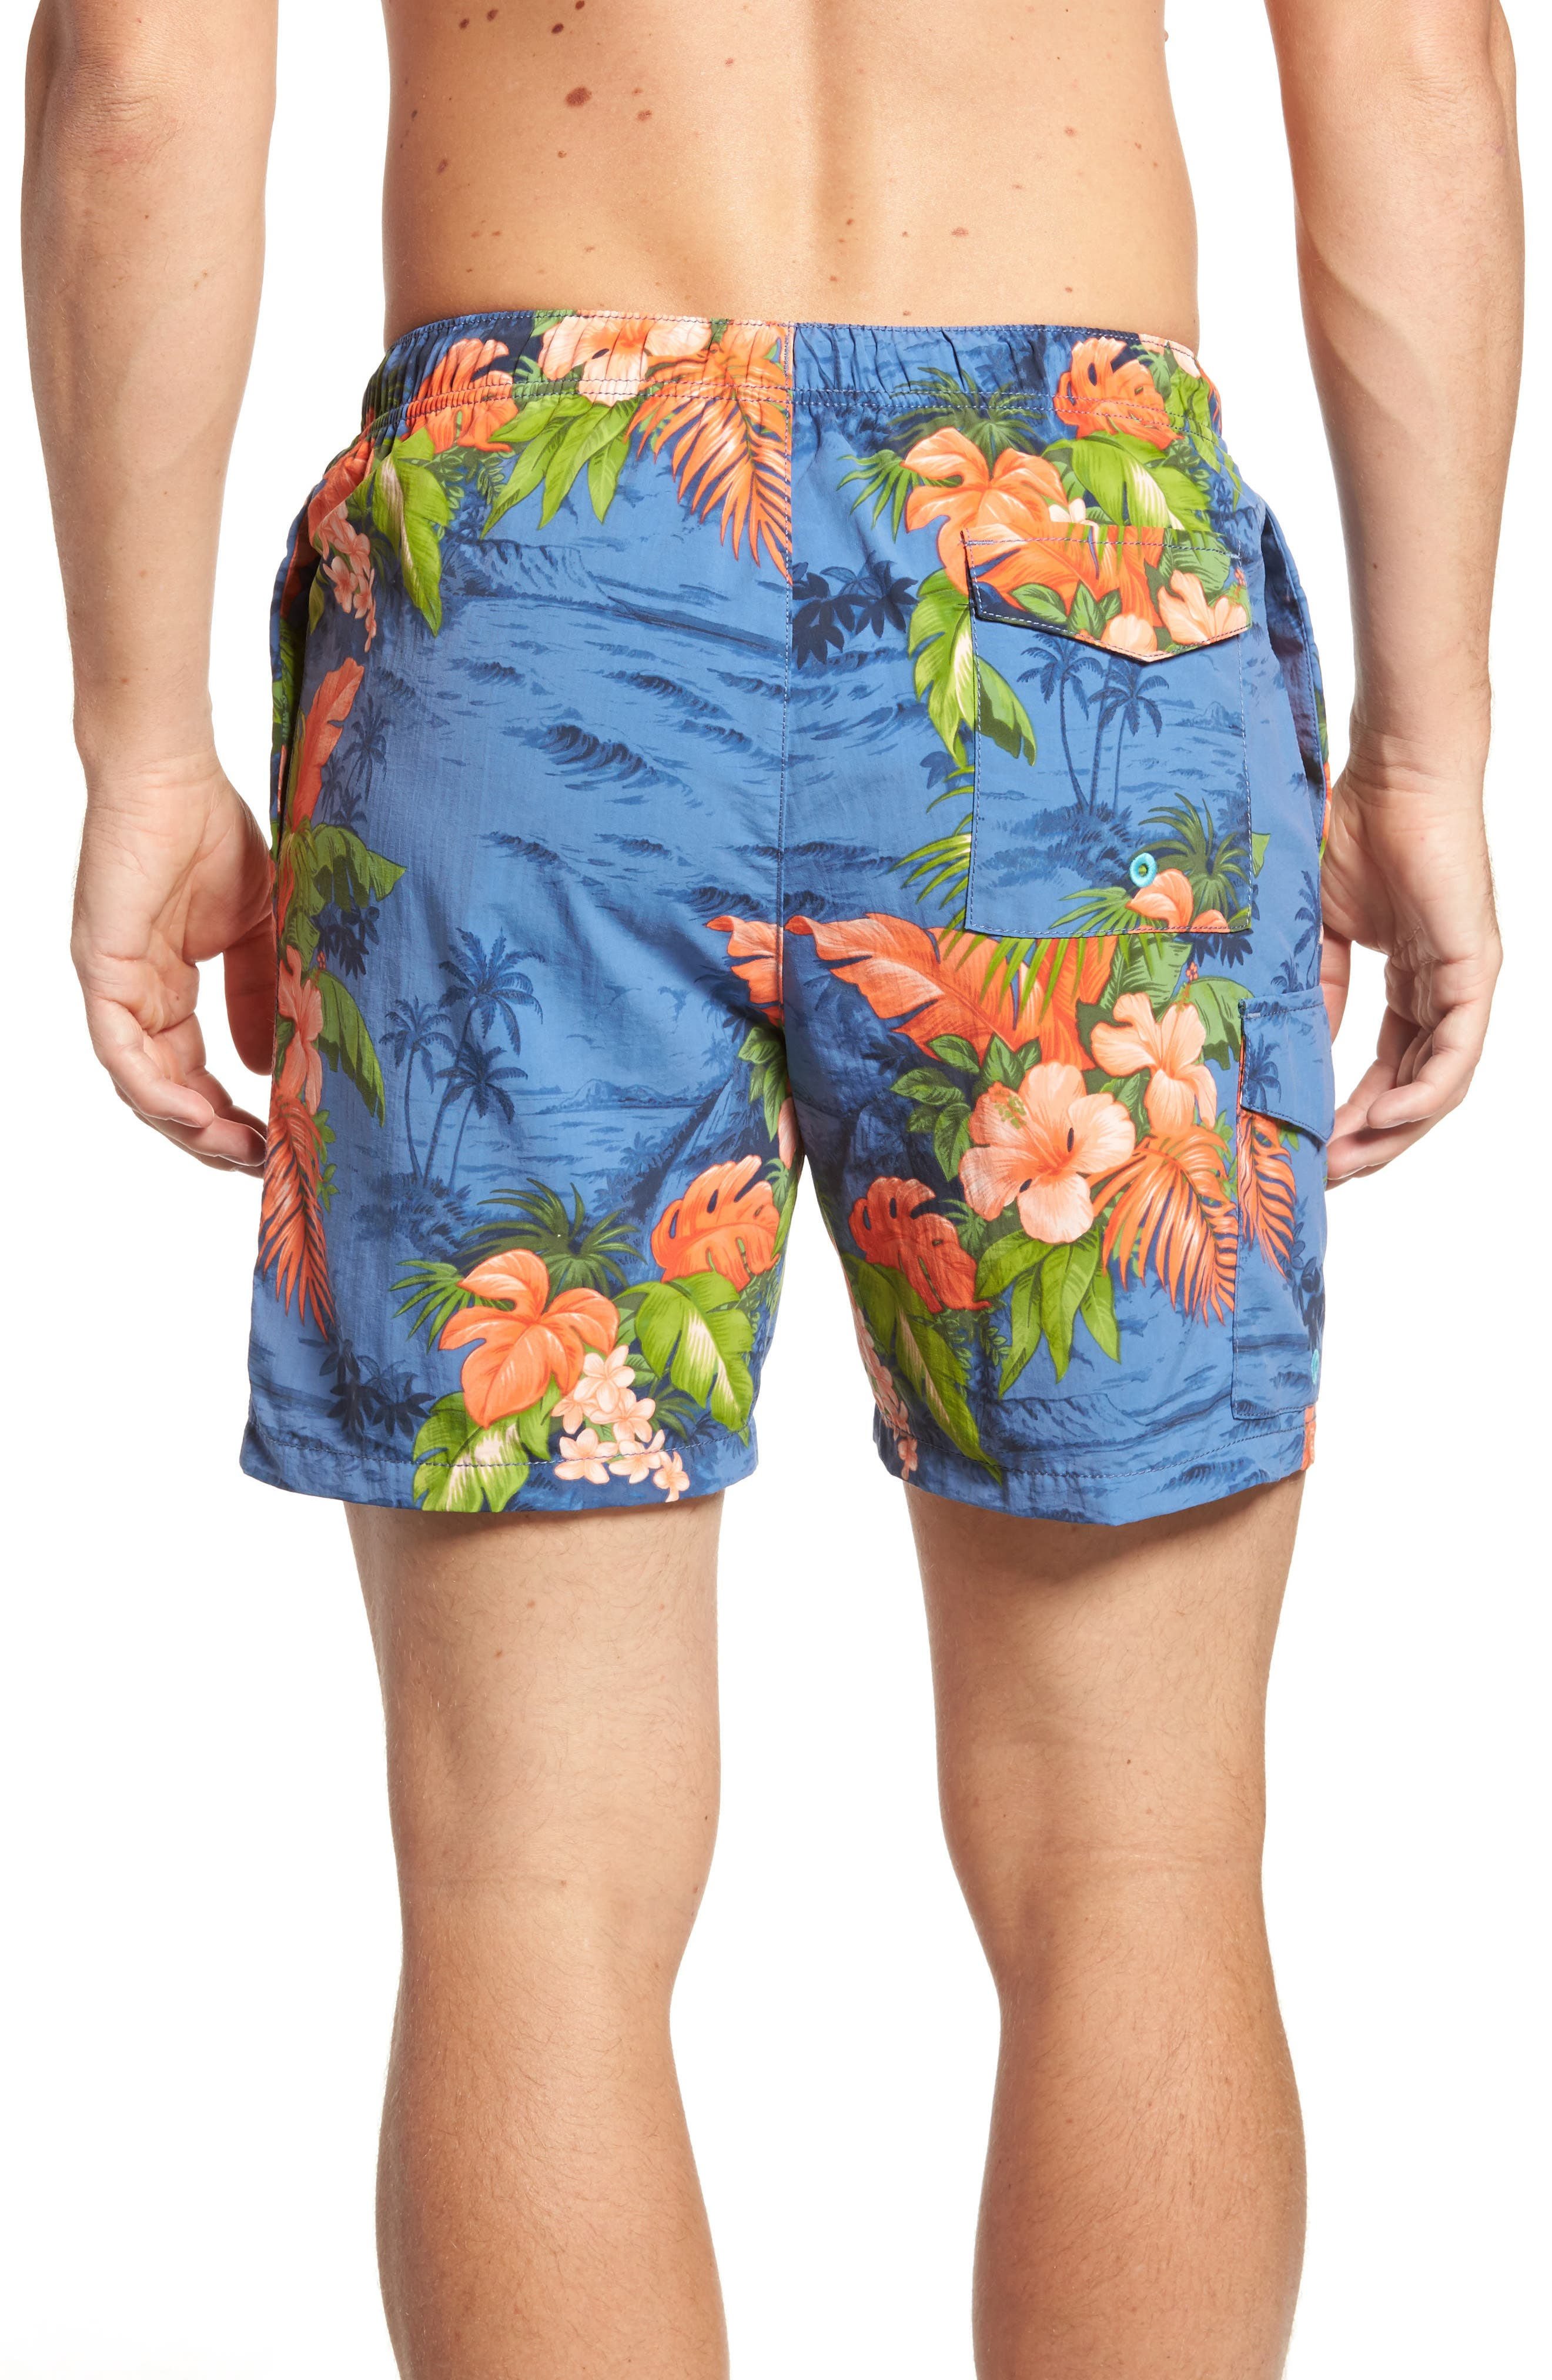 Naples Fiji Ferns Swim Trunks,                             Alternate thumbnail 2, color,                             Dockside Blue